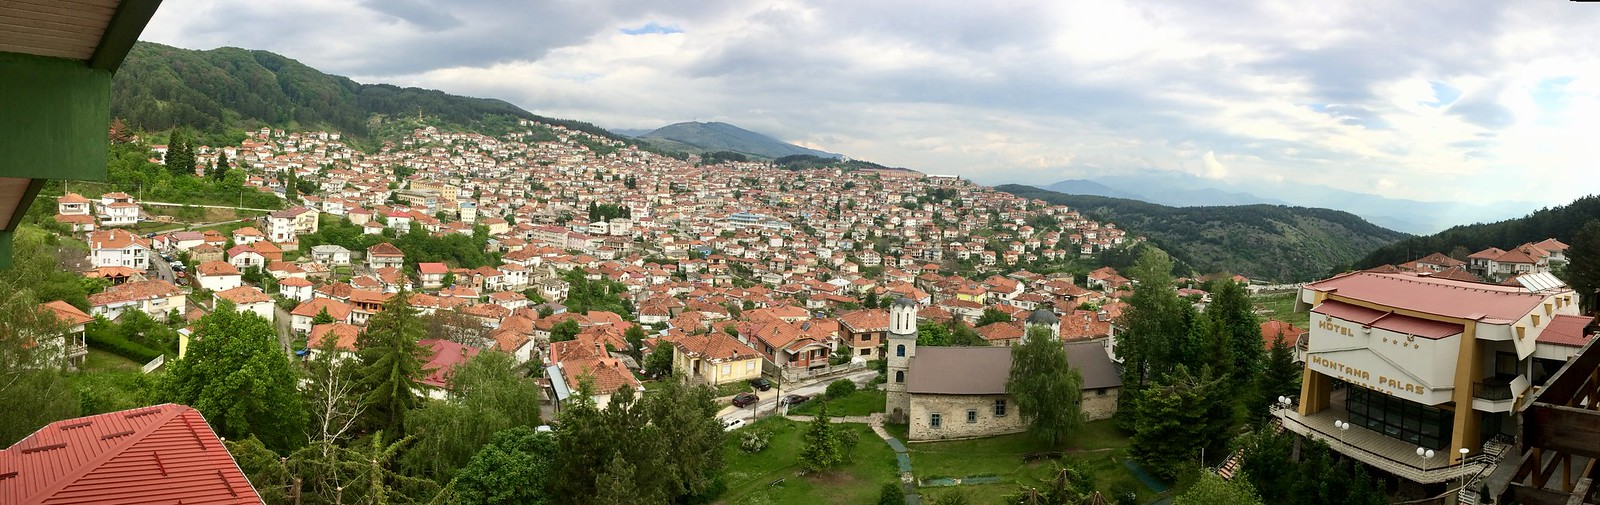 201705 - Balkans - Kruševo Town from Above - 51 of 101 - Krushevo, May 27, 2017